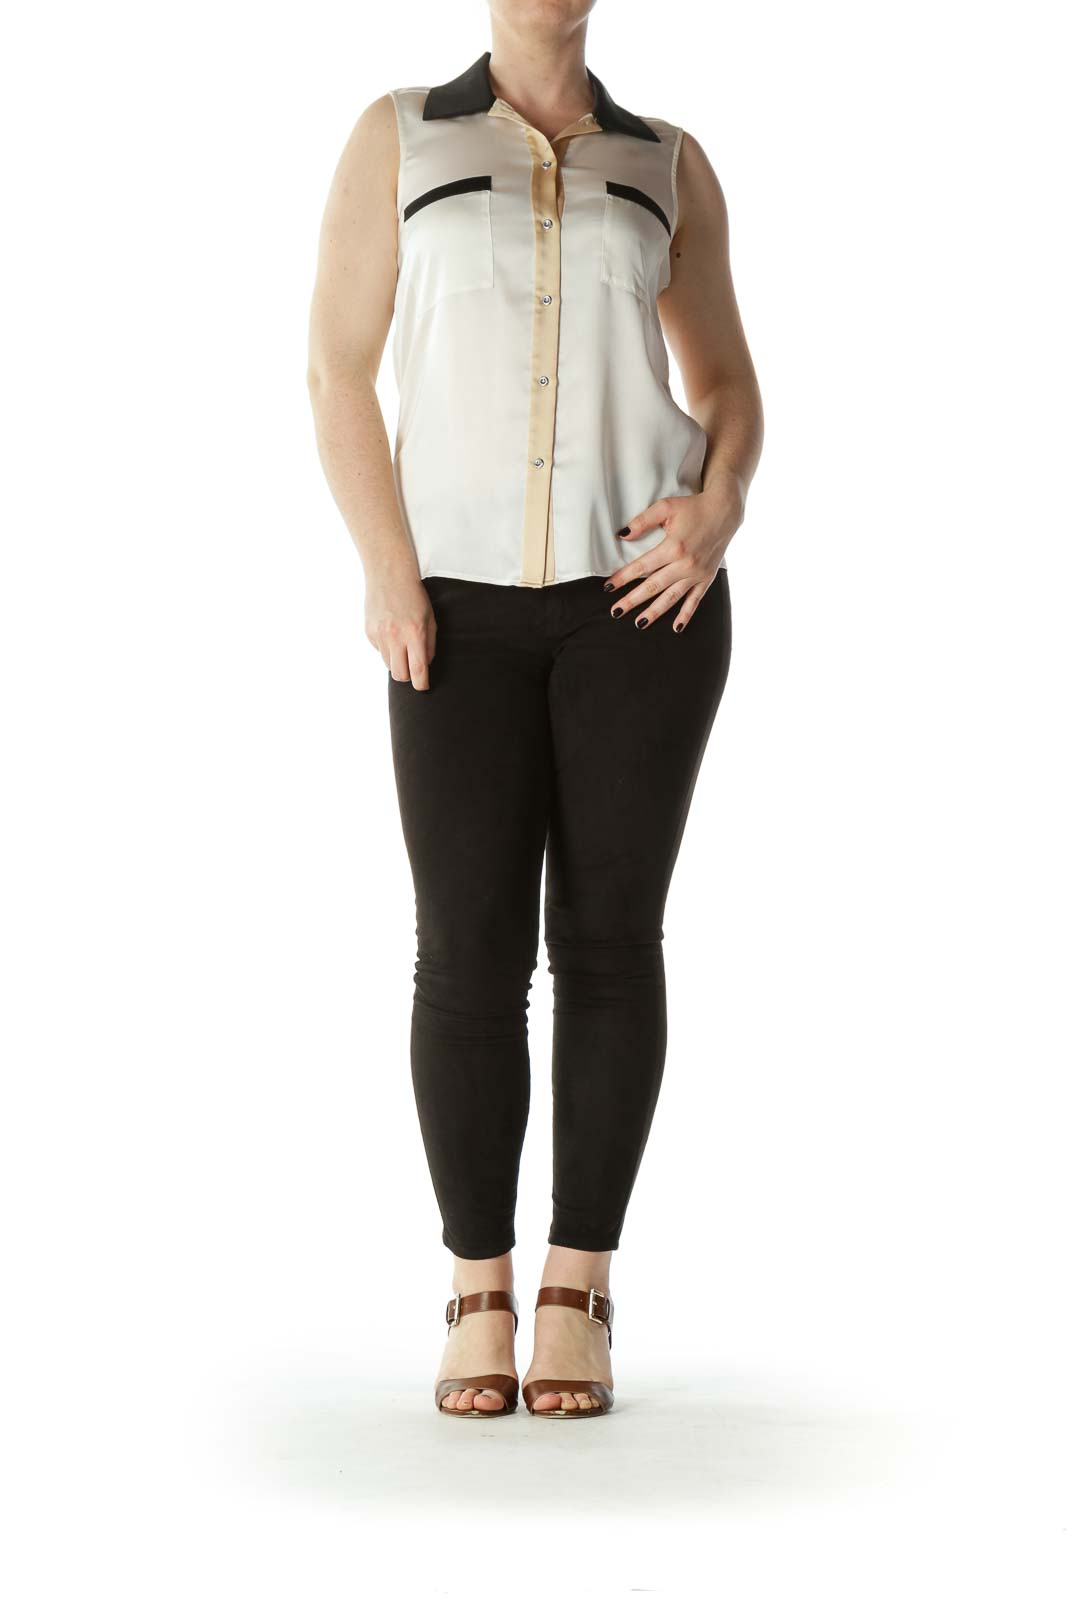 Cream Beige and Black Sleeveless Collared Button-Down